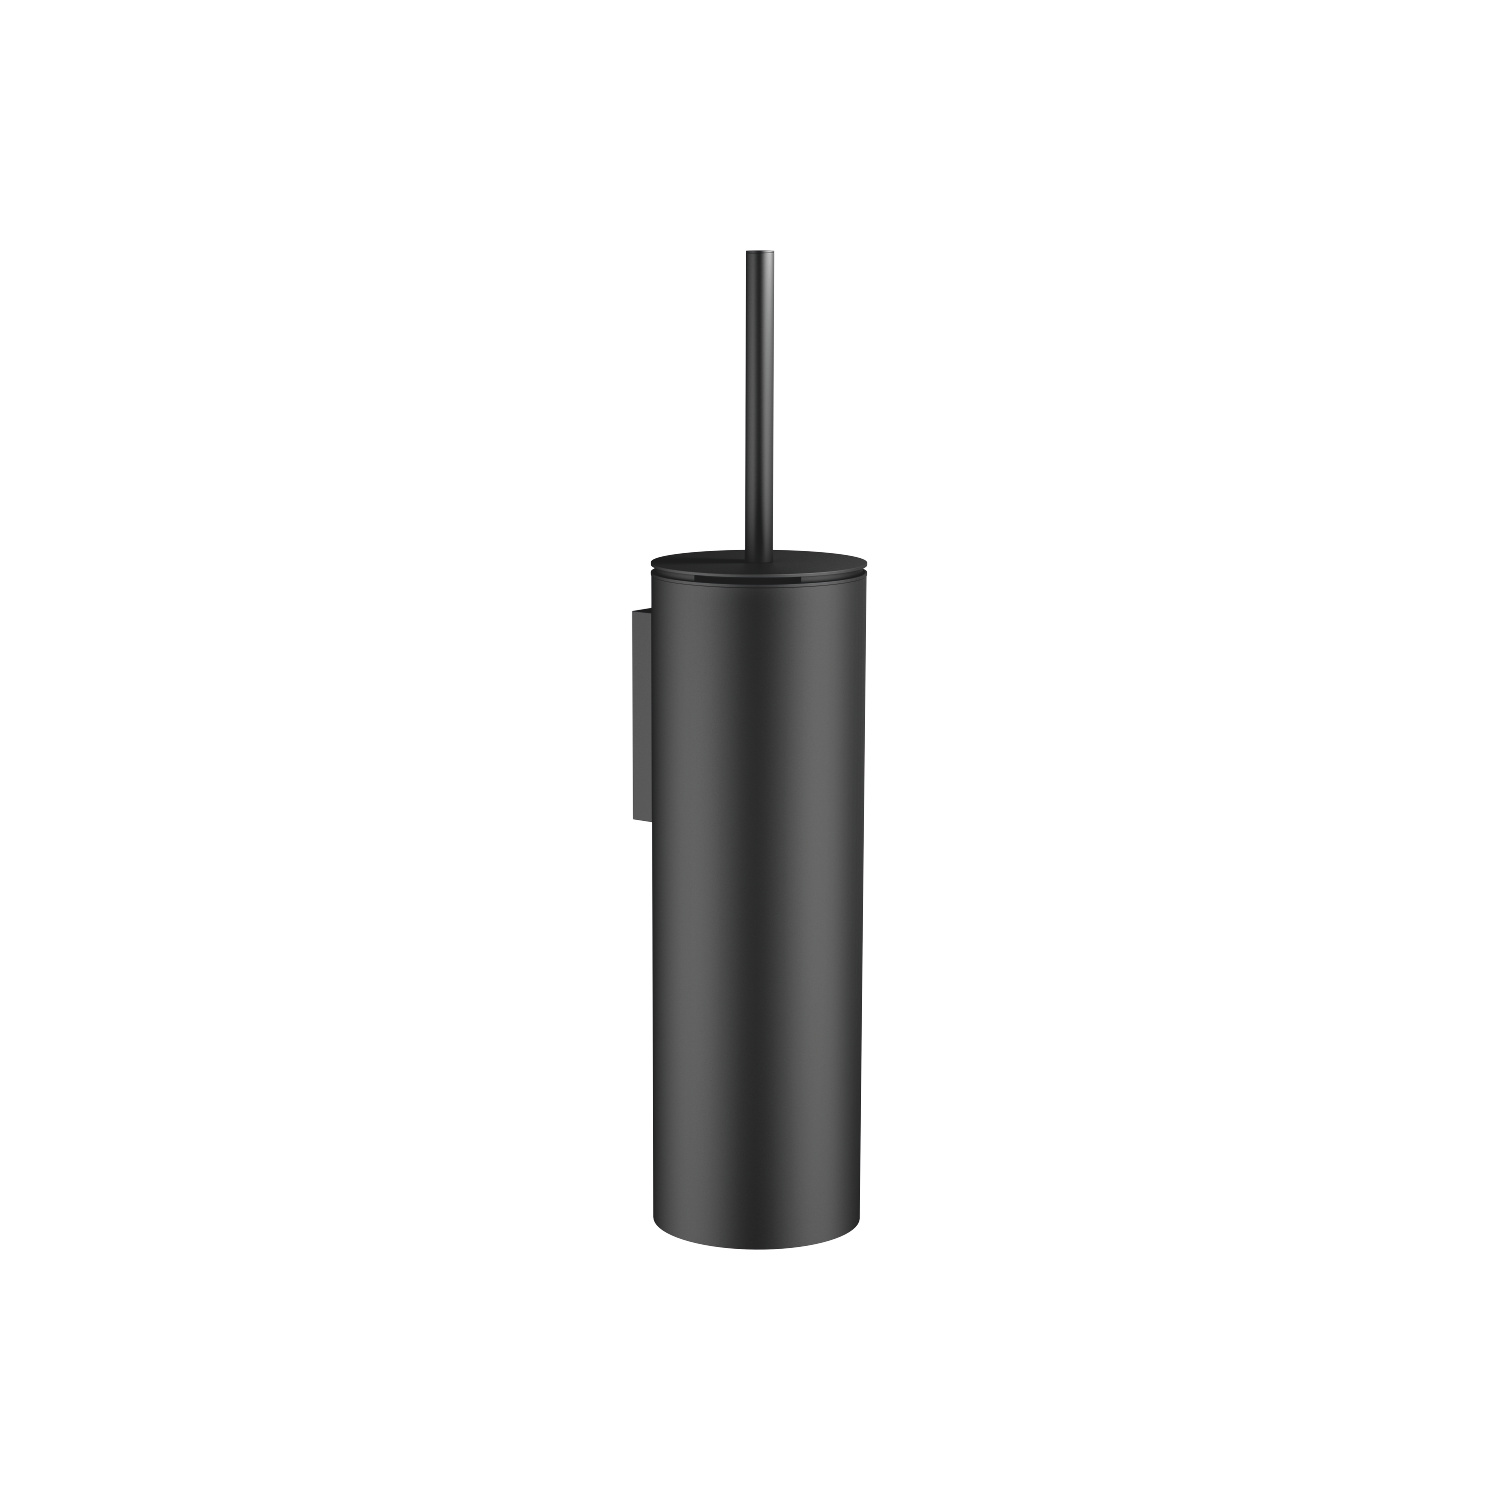 Toilet brush set wall model - matt black